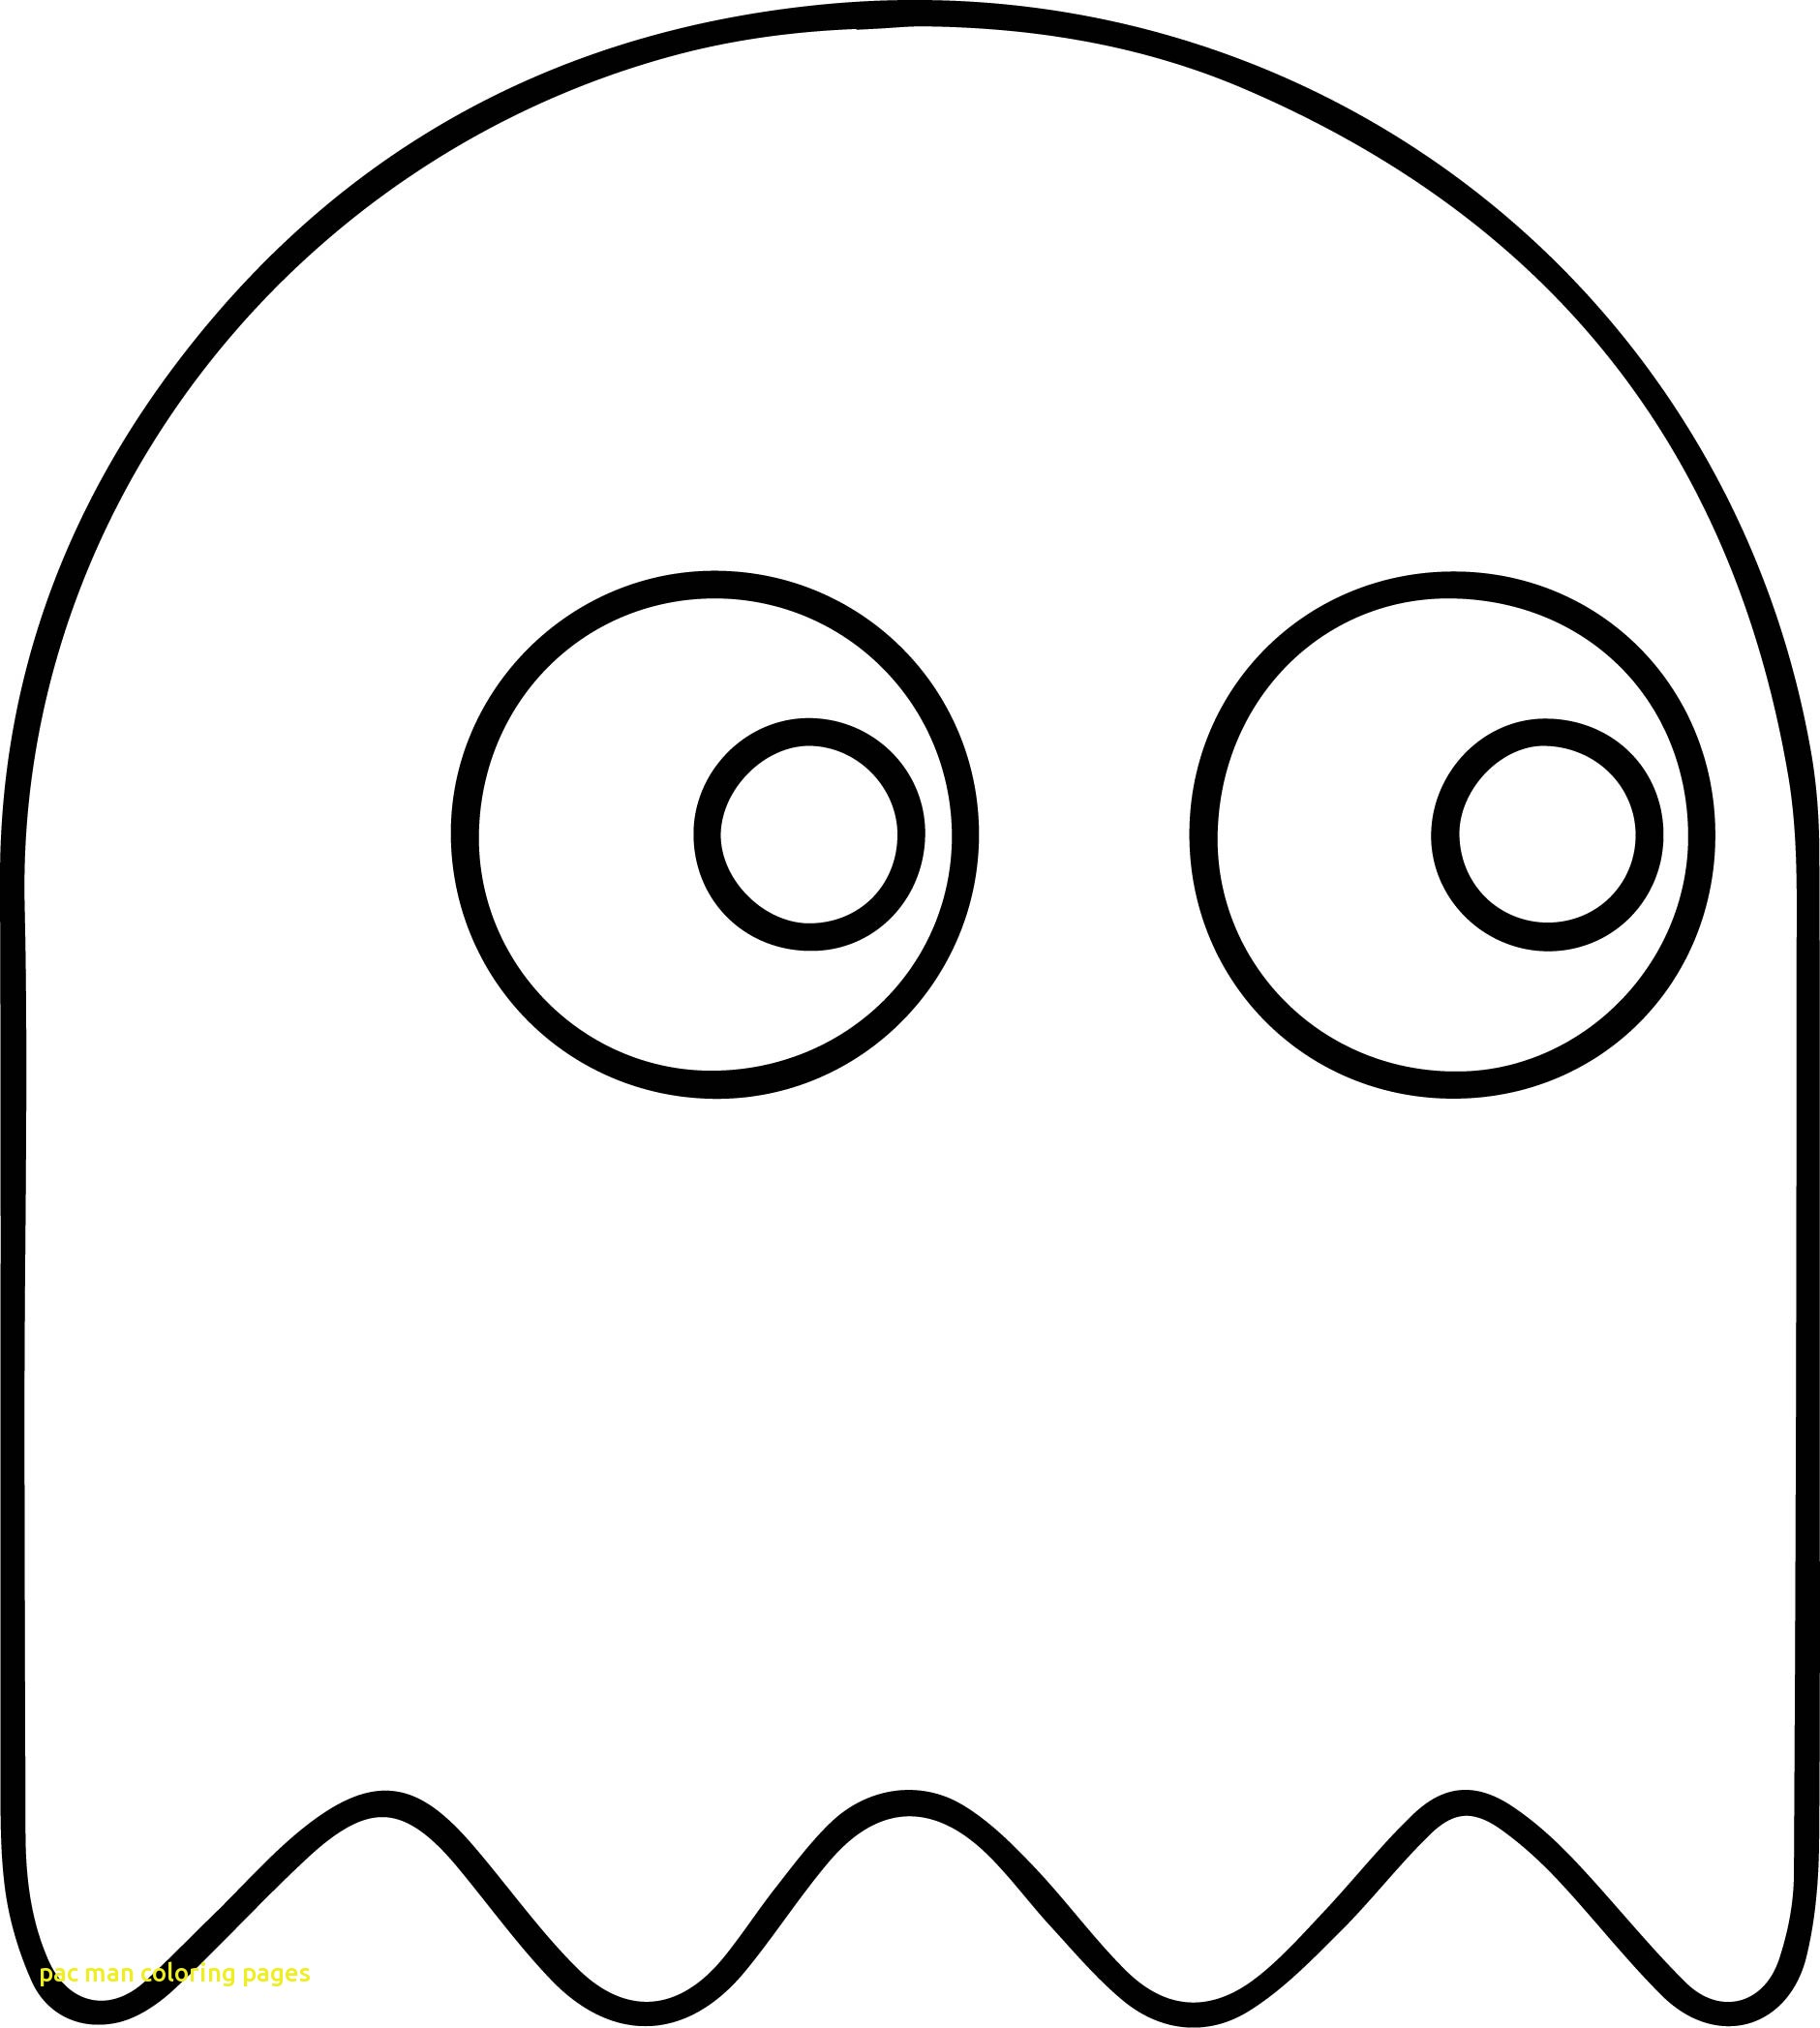 1880x2095 Pac Man Coloring Pages With Pac Man Ghost Video Game Characters